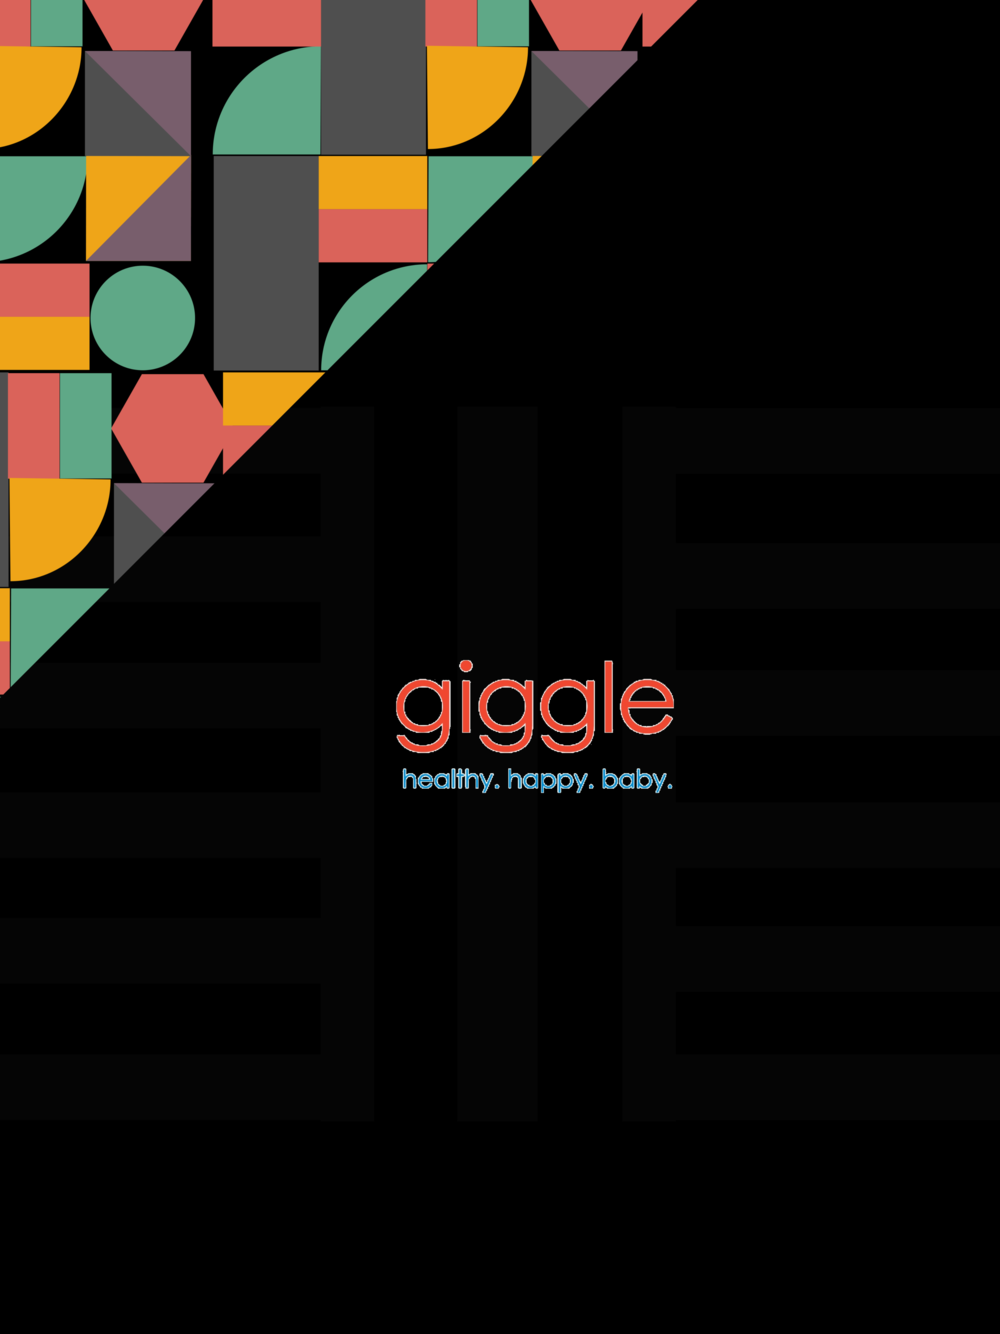 Abstract giggle (0024).png